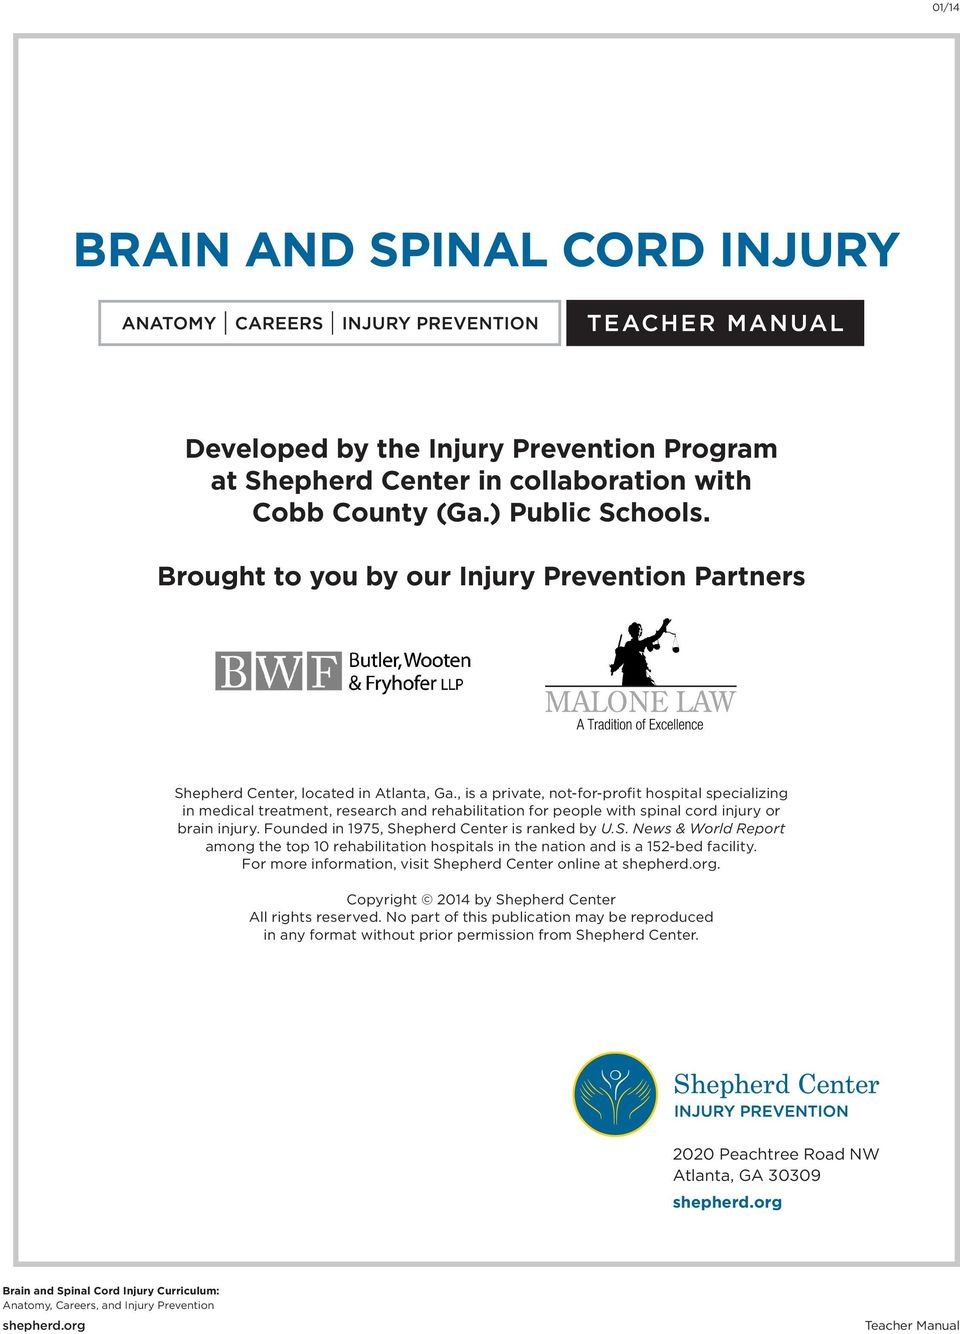 , is a private, not-for-profit hospital specializing in medical treatment, research and rehabilitation for people with spinal cord injury or brain injury.